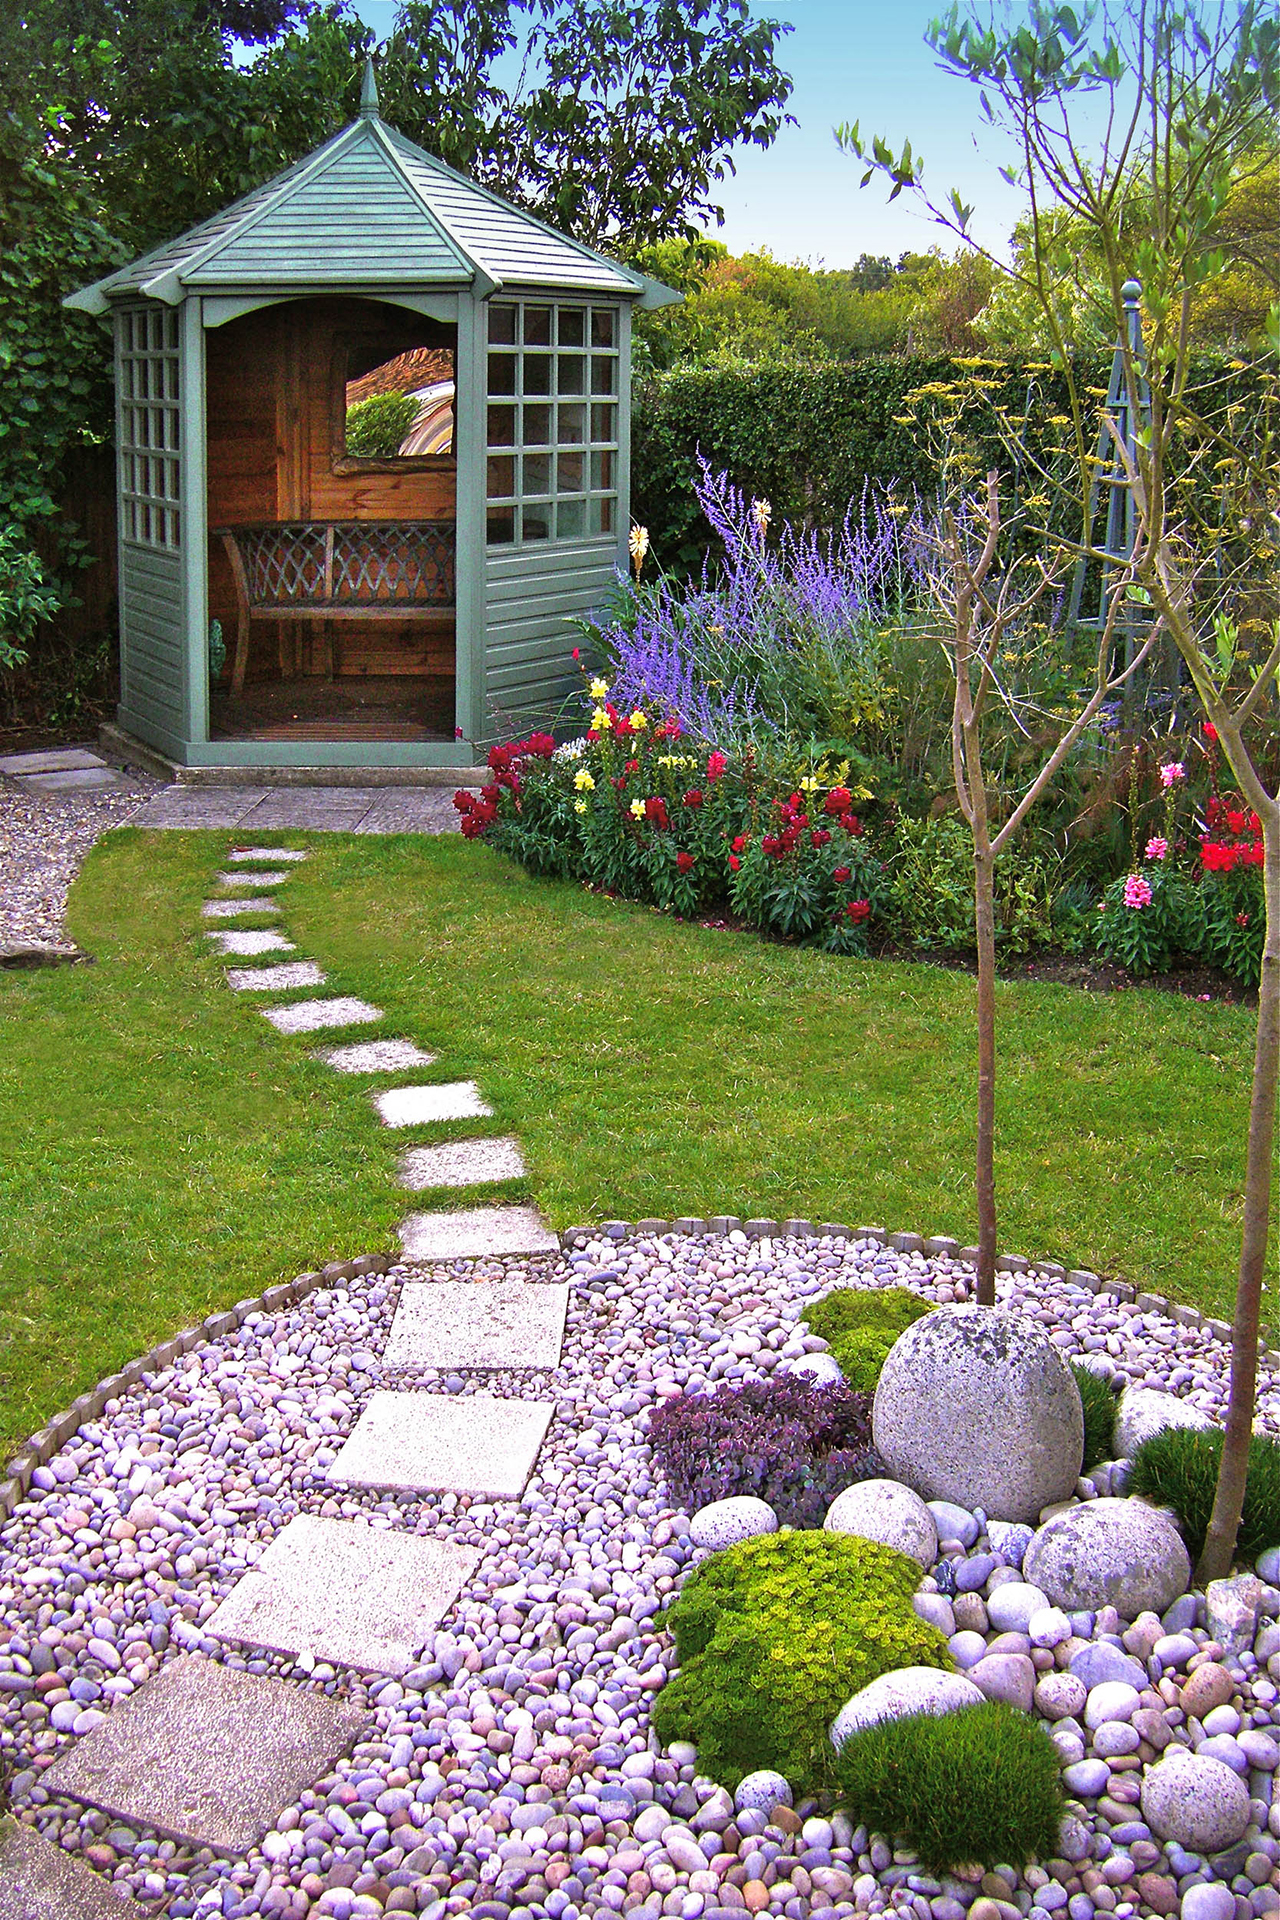 50 Best Backyard Landscaping Ideas and Designs in 2020 on Patio And Grass Garden Ideas id=86503